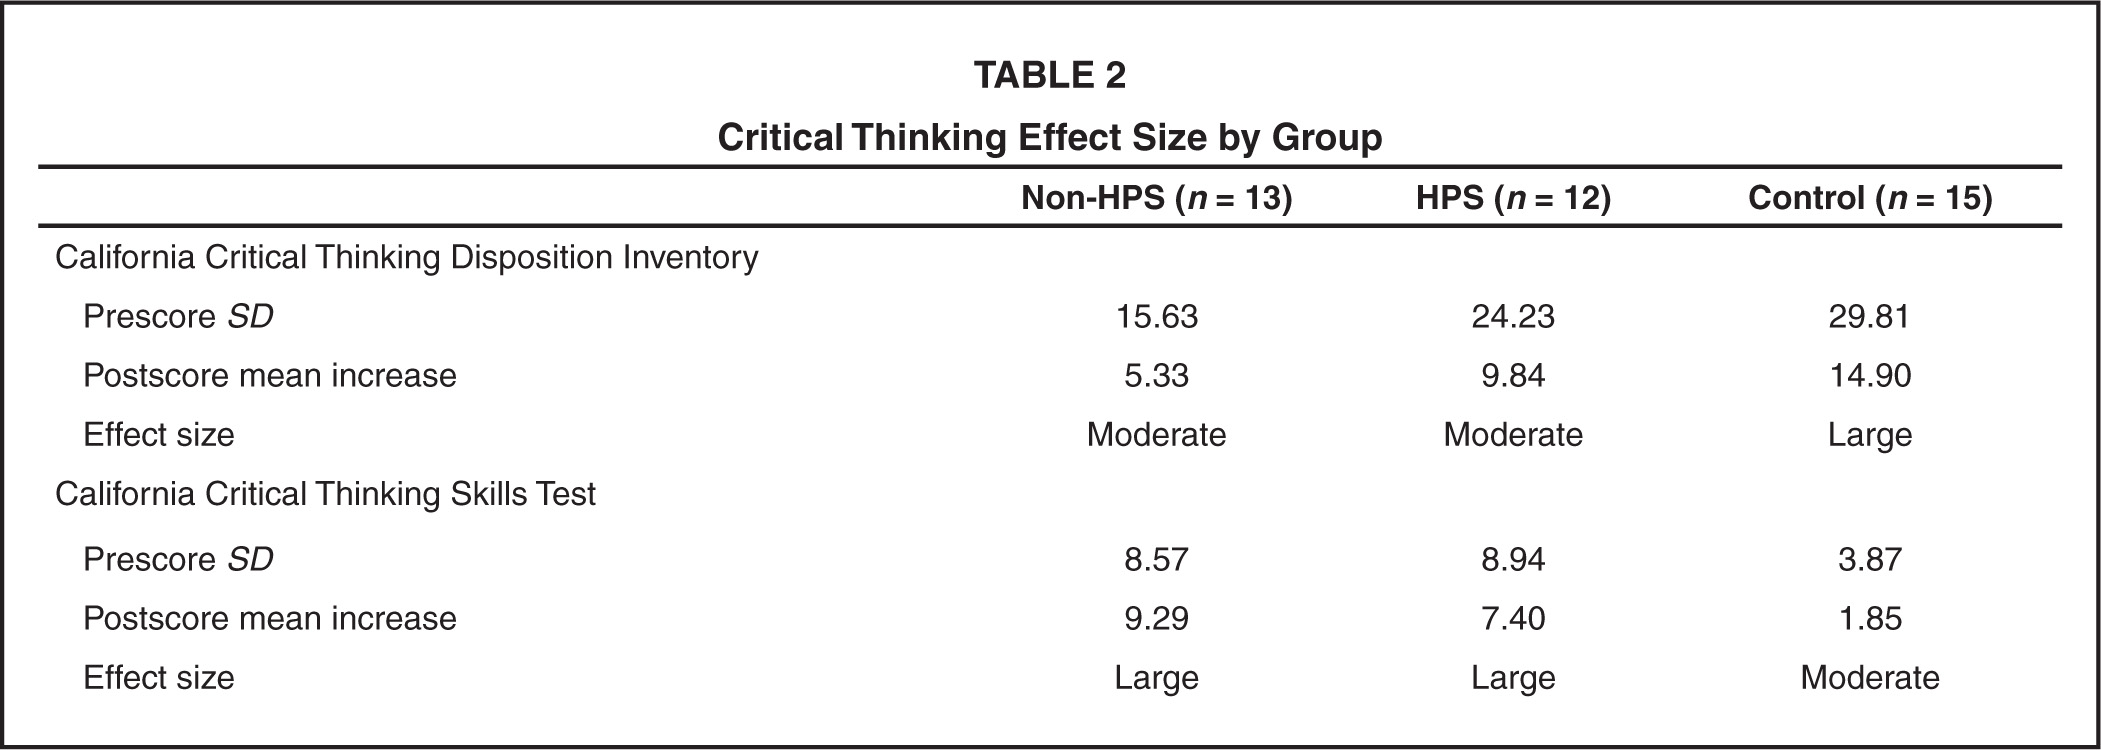 thinking critically simulation review Critical thinking: a literature review educators have long been aware of the importance of critical thinking skills as an outcome of student learning more recently, the partnership for 21st century skills has identified.